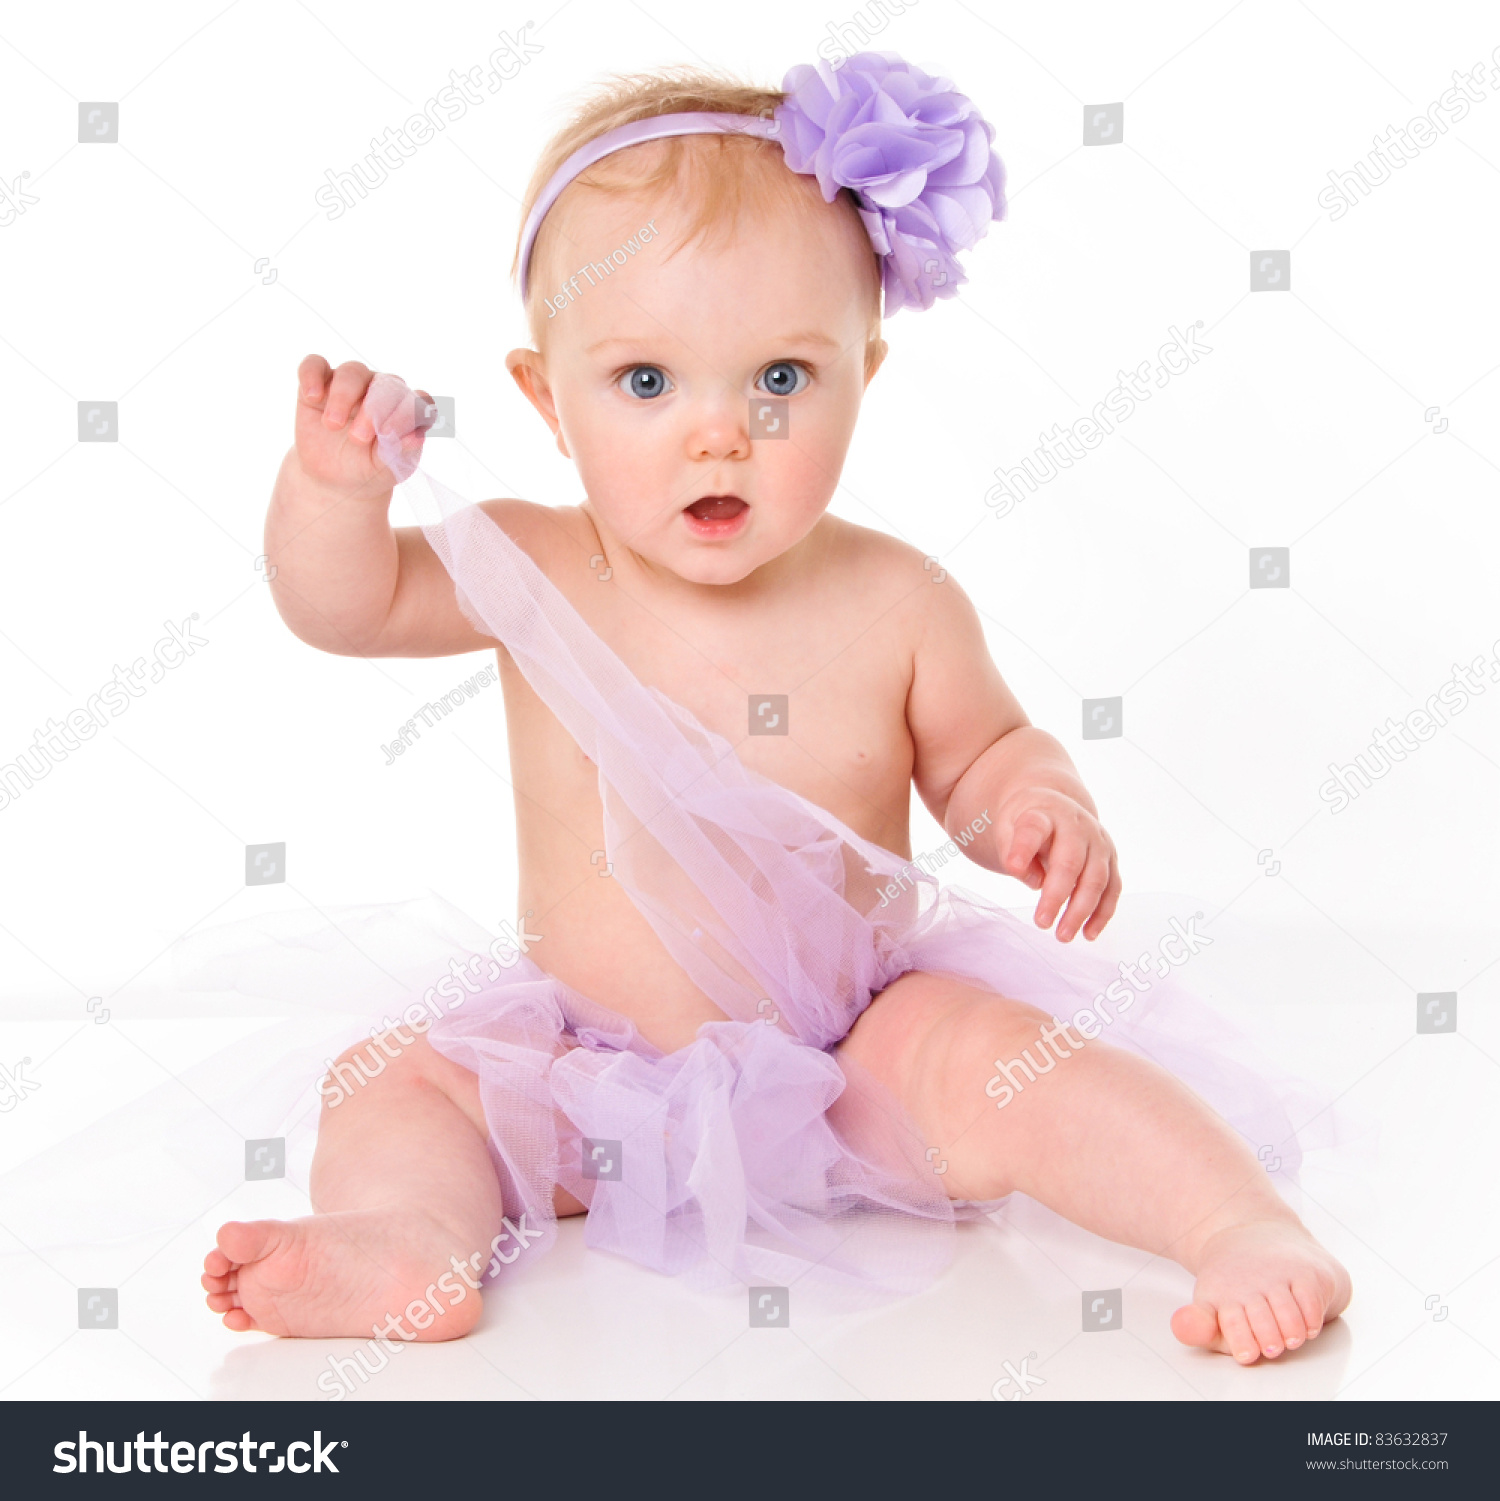 cute little baby girl with big blue eyes wearing a tutu and flower